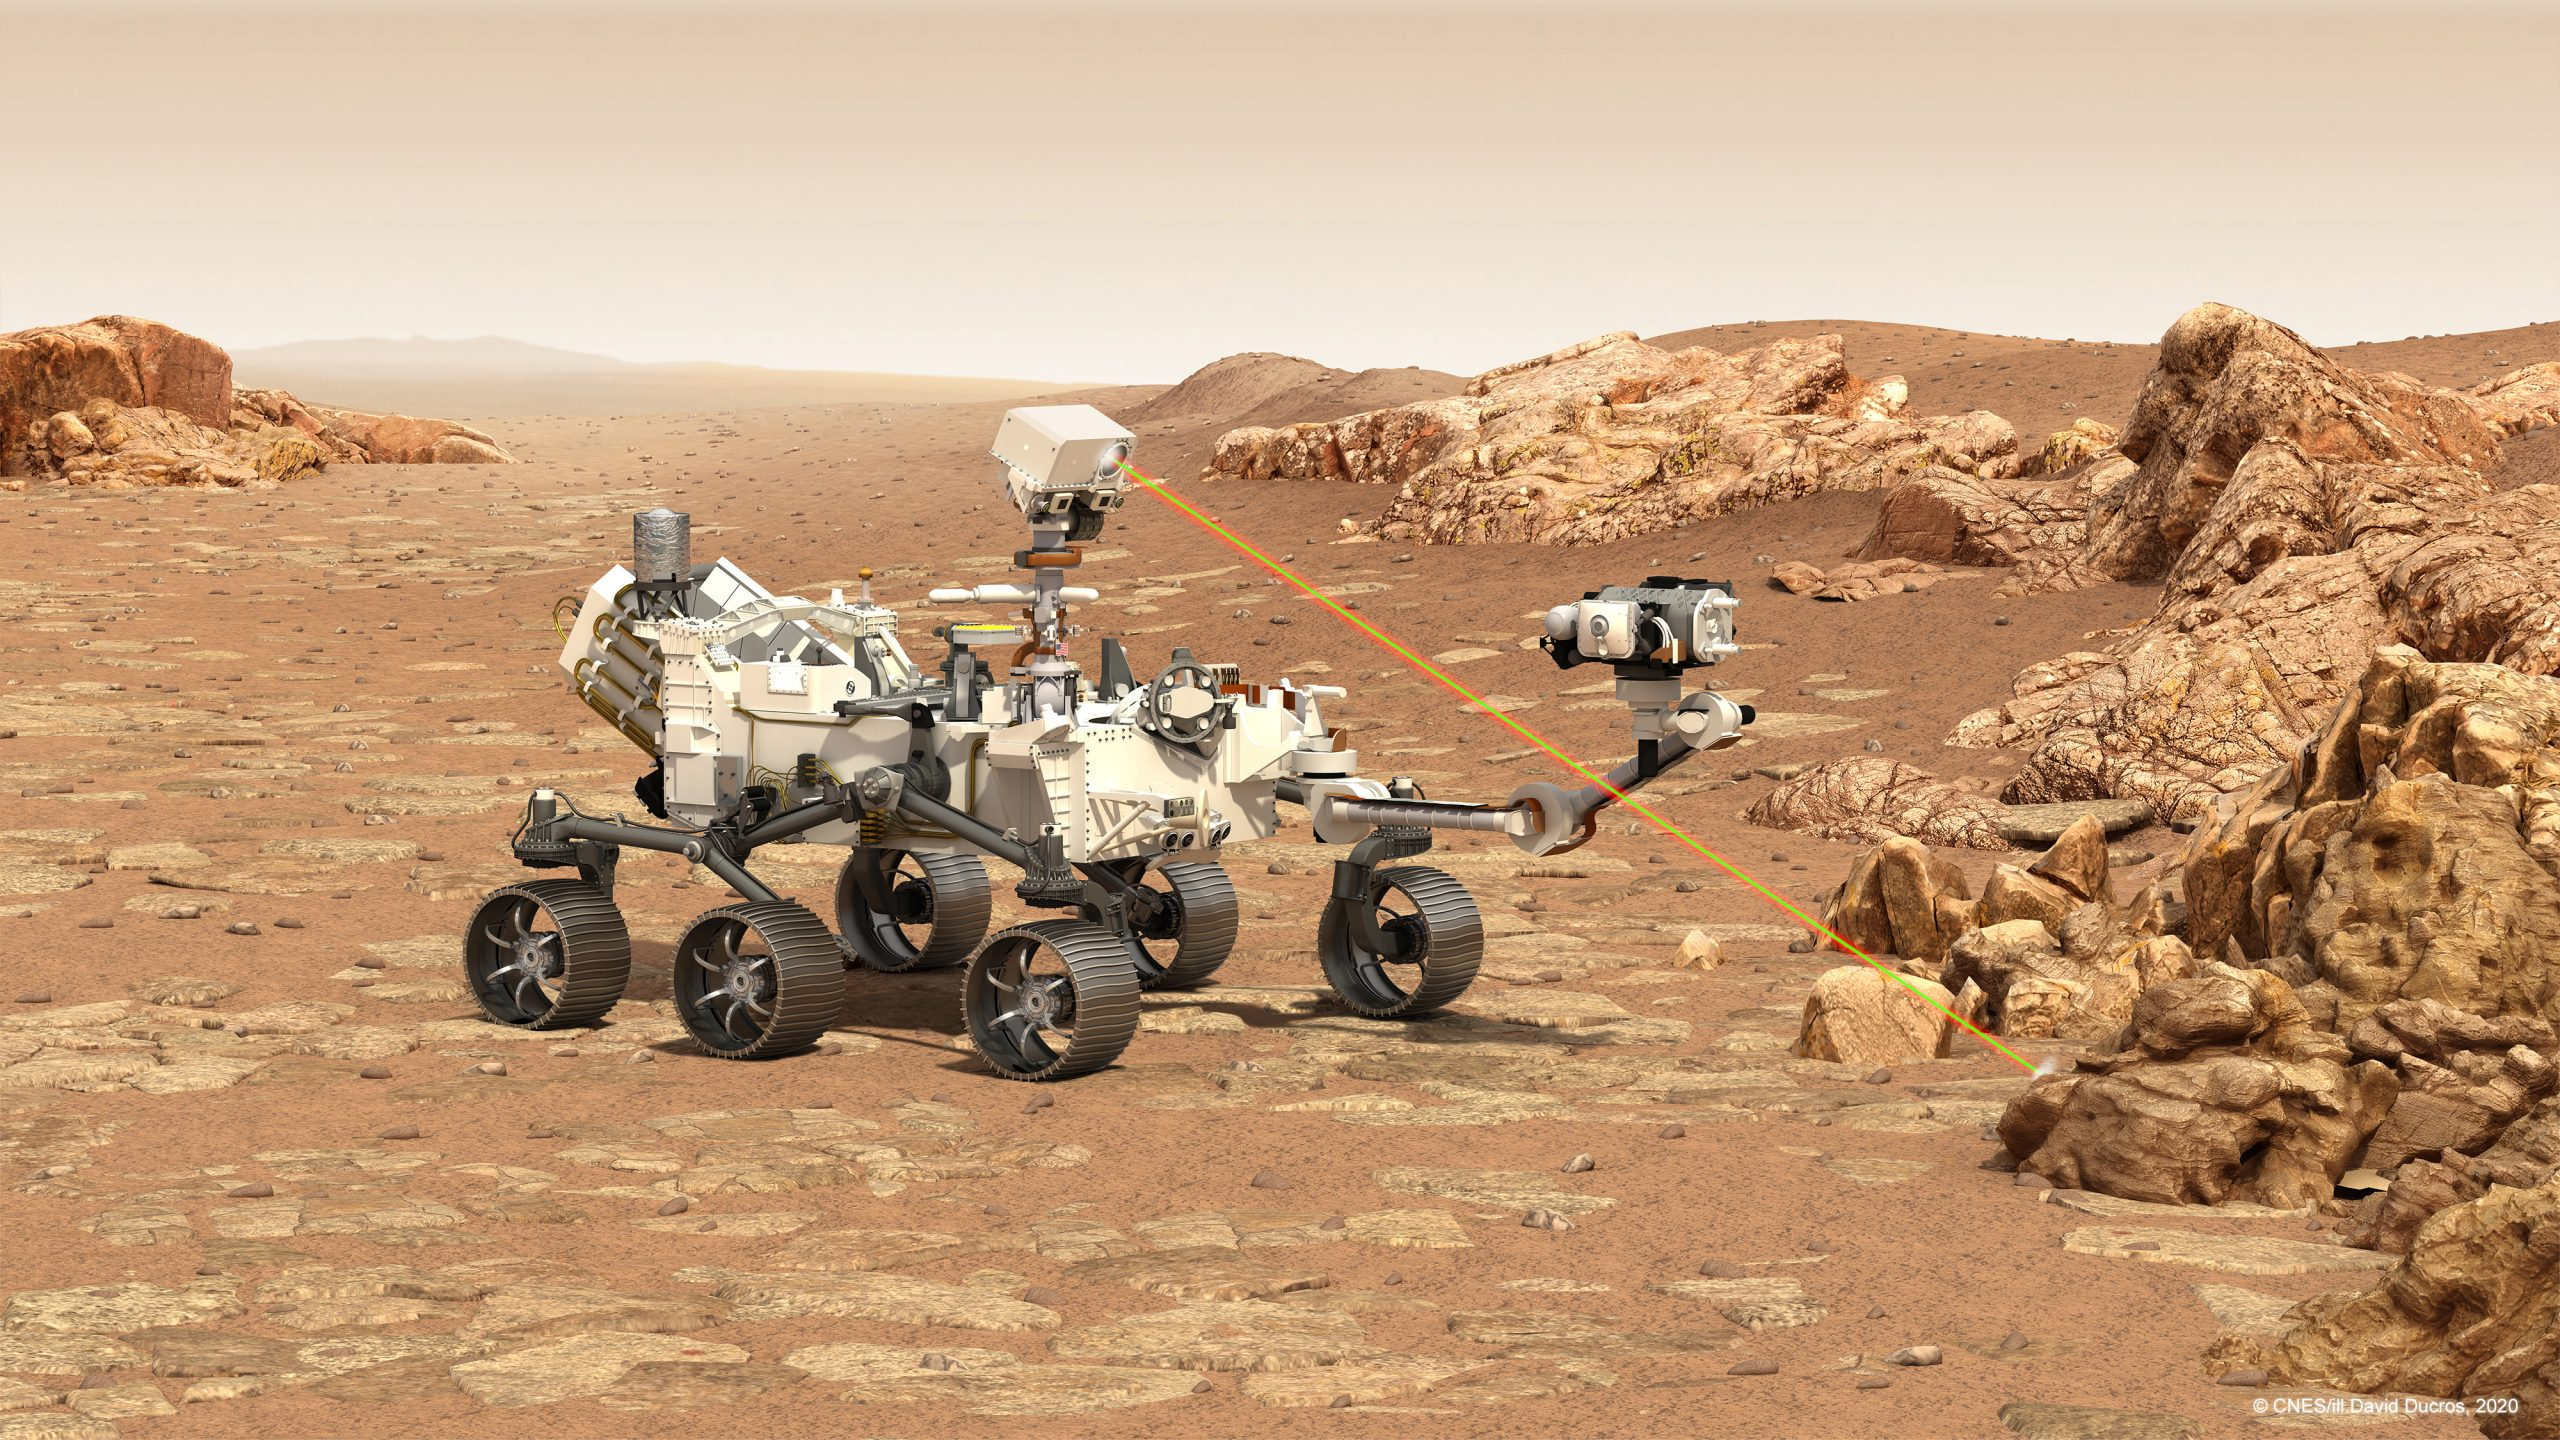 The SuperCam instrument in action on the NASA Perseverance Mars rover.